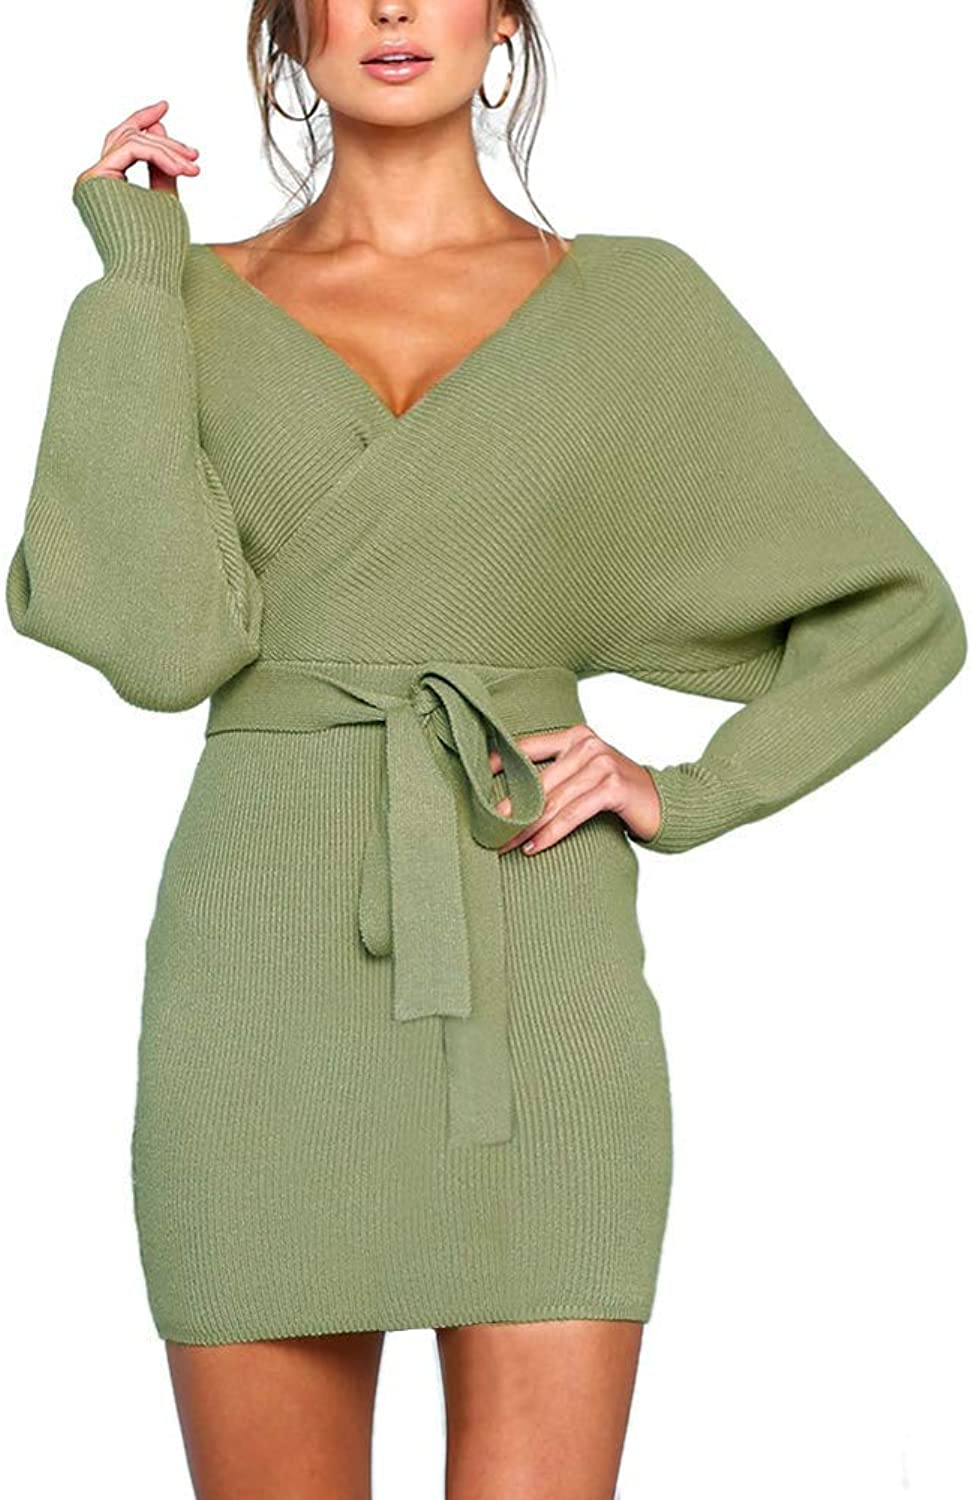 Ramoug Womens Sexy Cocktail Wrap Deep V Neck Batwing Long Sleeve Knitted Mini Sweater Dress with Belt